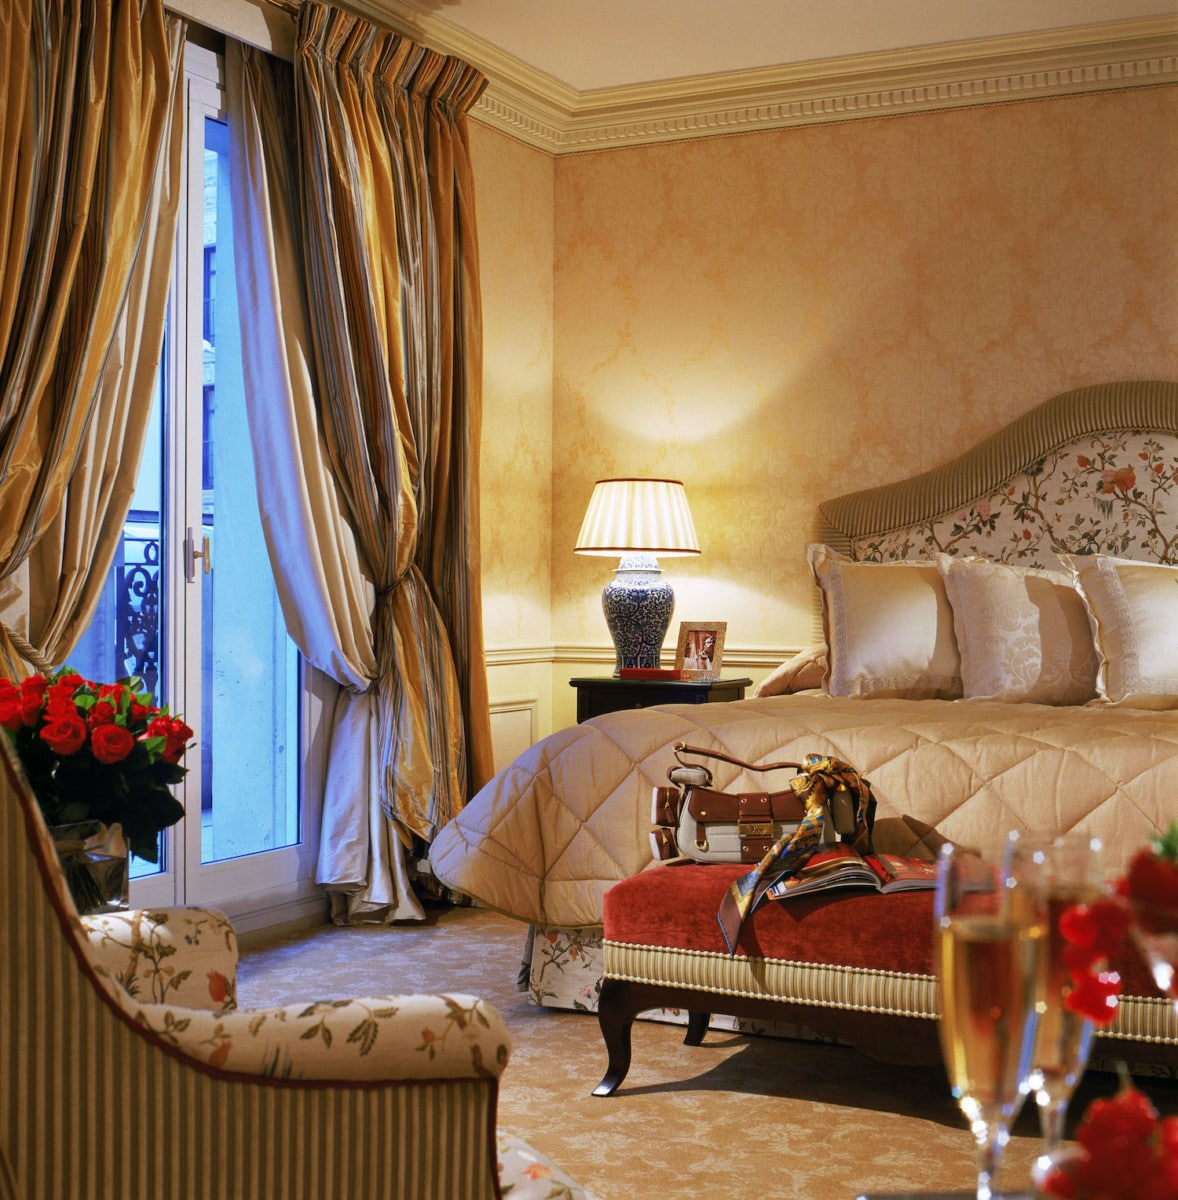 I stayed in a beautiful Junior Suite Deluxe at Hotel Métropole. Photo by F.Rambert, courtesy Hotel Métropole